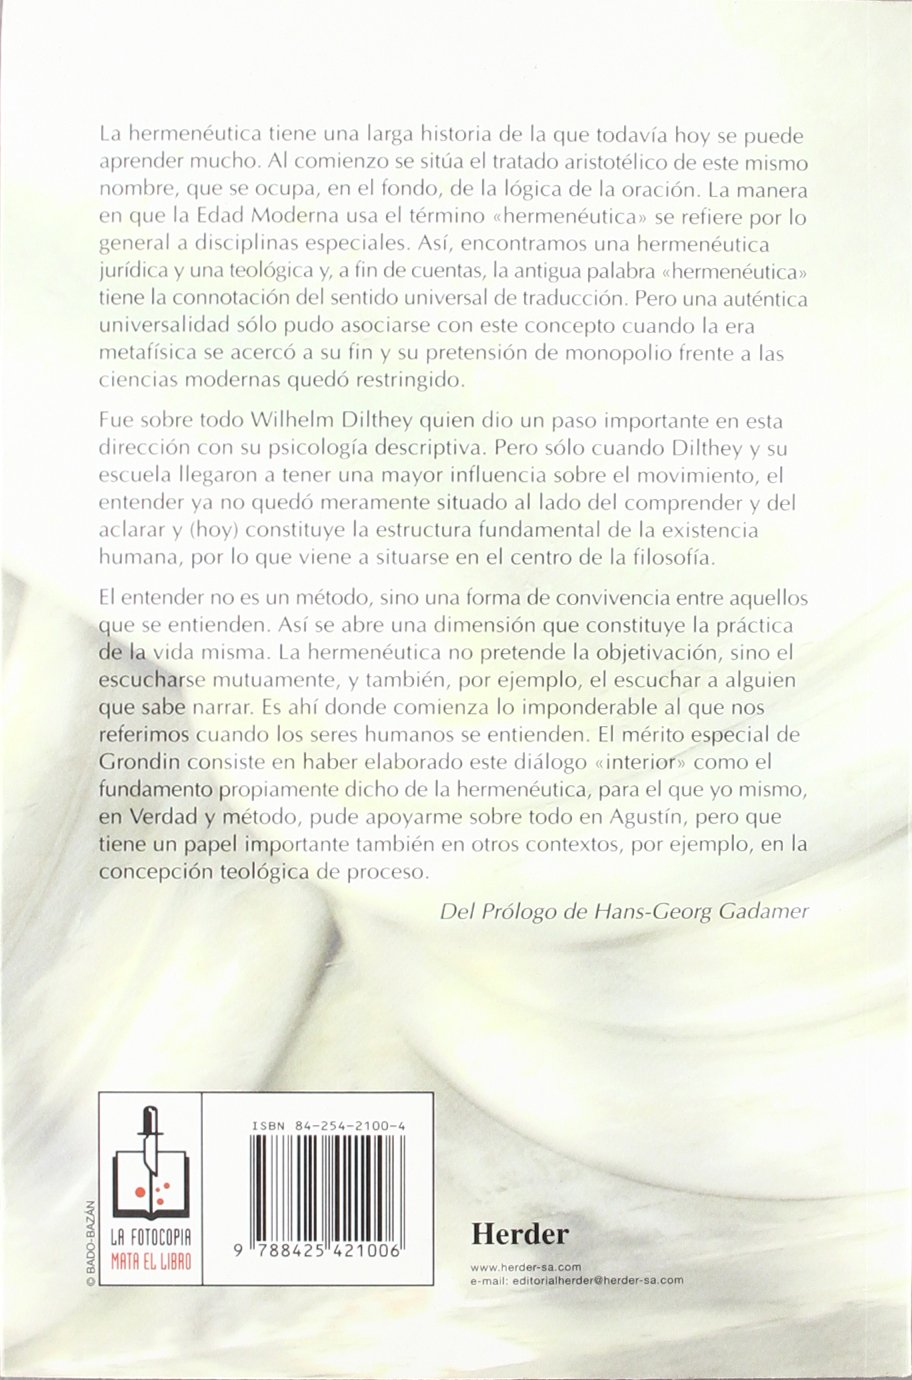 Introduccion a la hermeneutica filosofica (Spanish Edition): Jean Grondin: 9788425421006: Amazon.com: Books